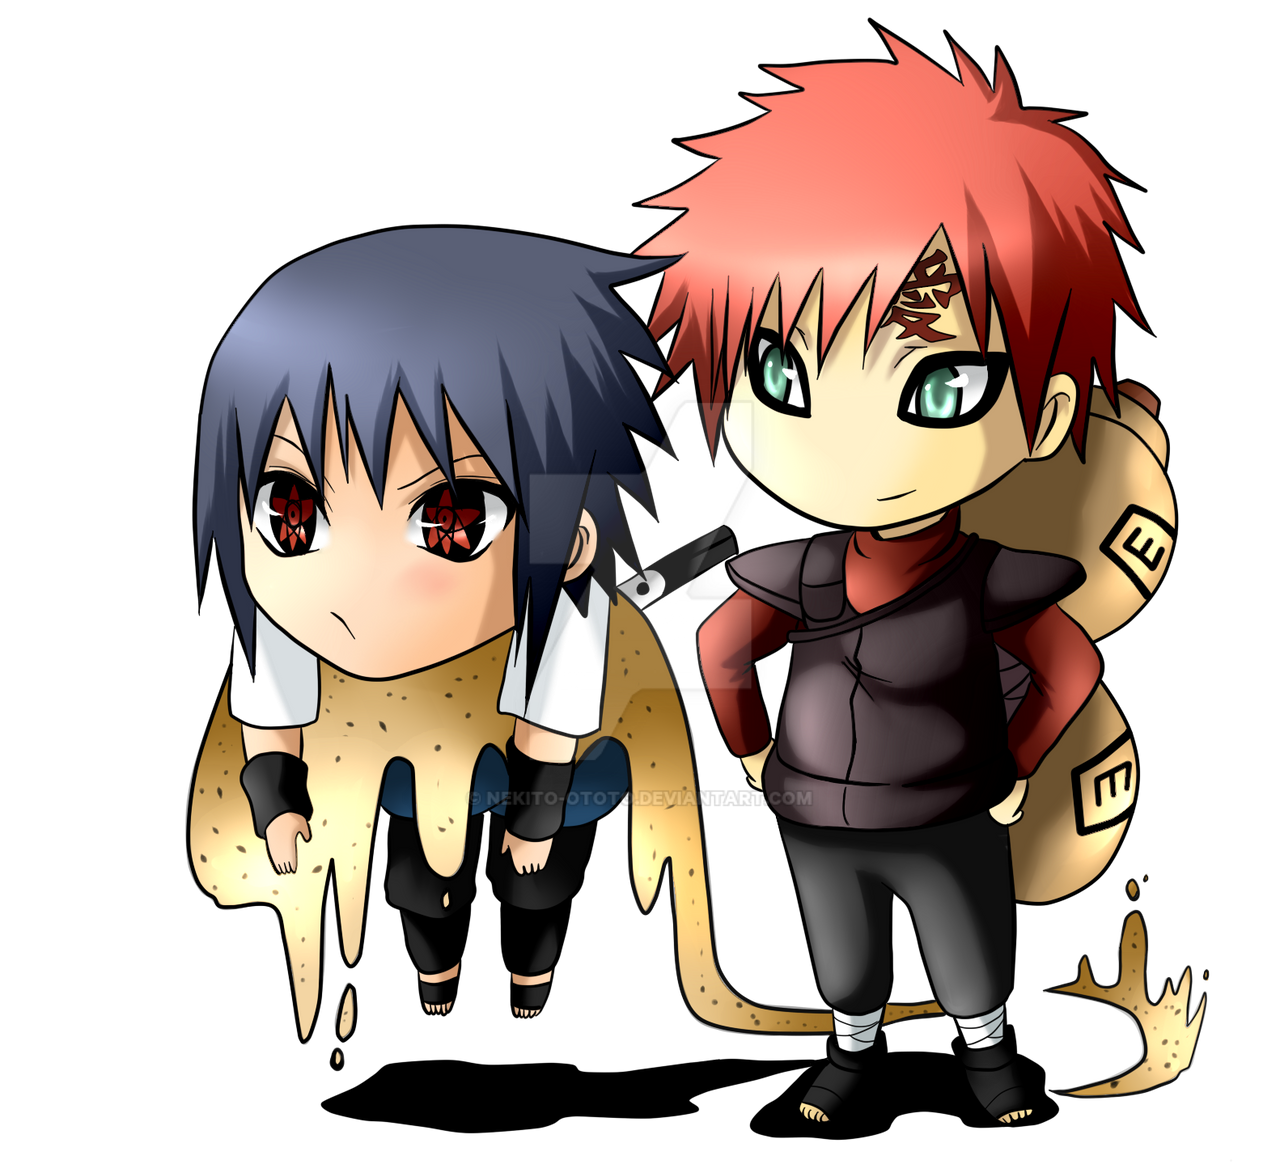 Sasuke and Gaara chibi x3 by nekito-ototo on DeviantArt Gaara And Naruto Chibi